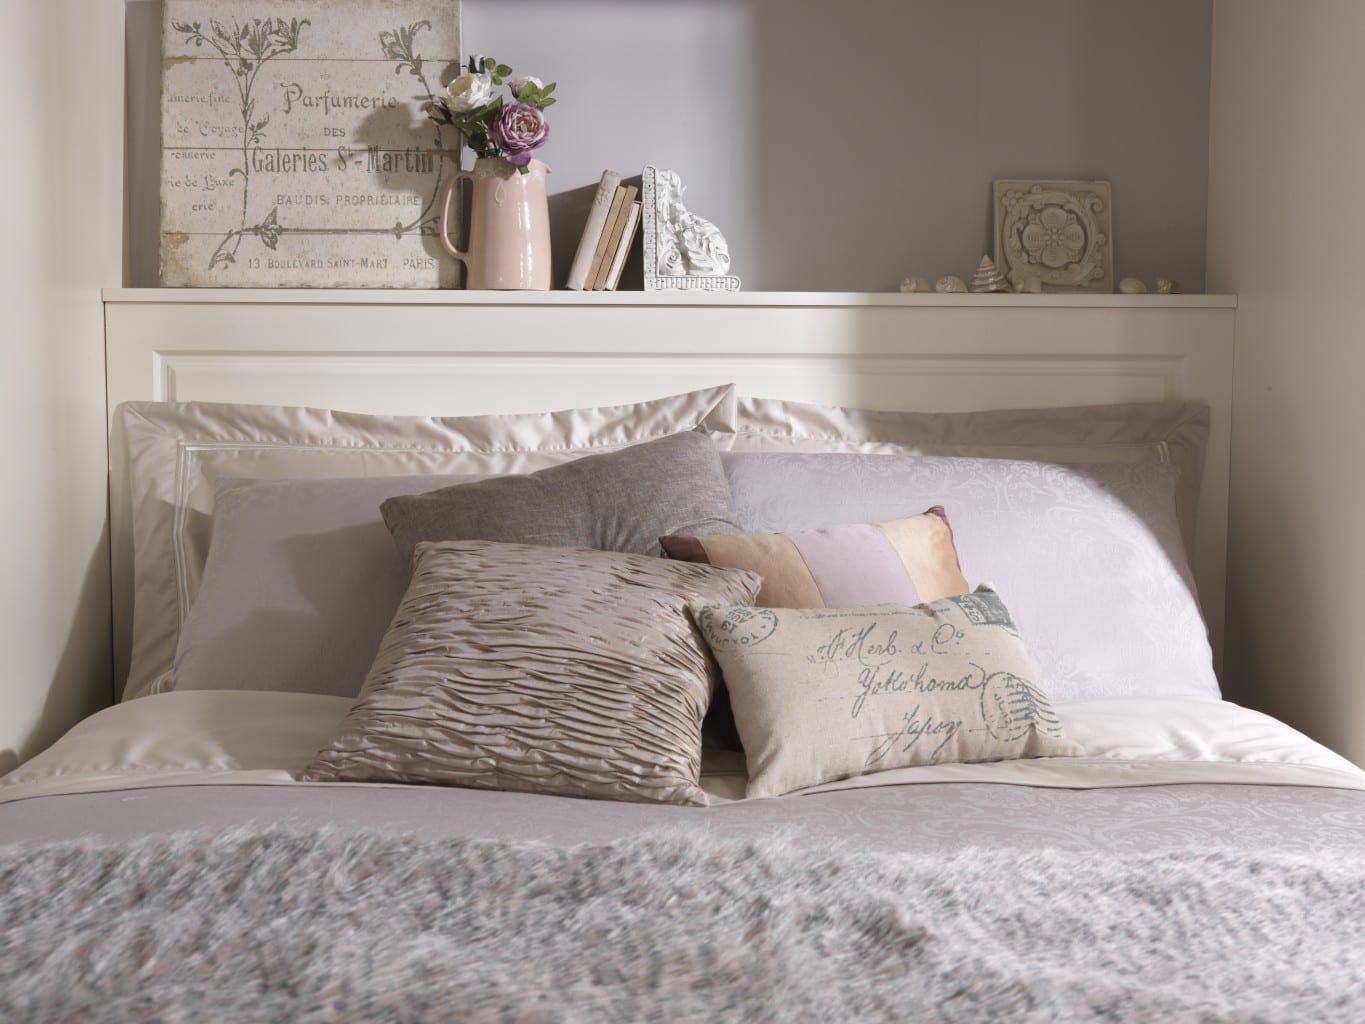 Focusing on the top of the bed, our classic Chelsea style fitted headboard